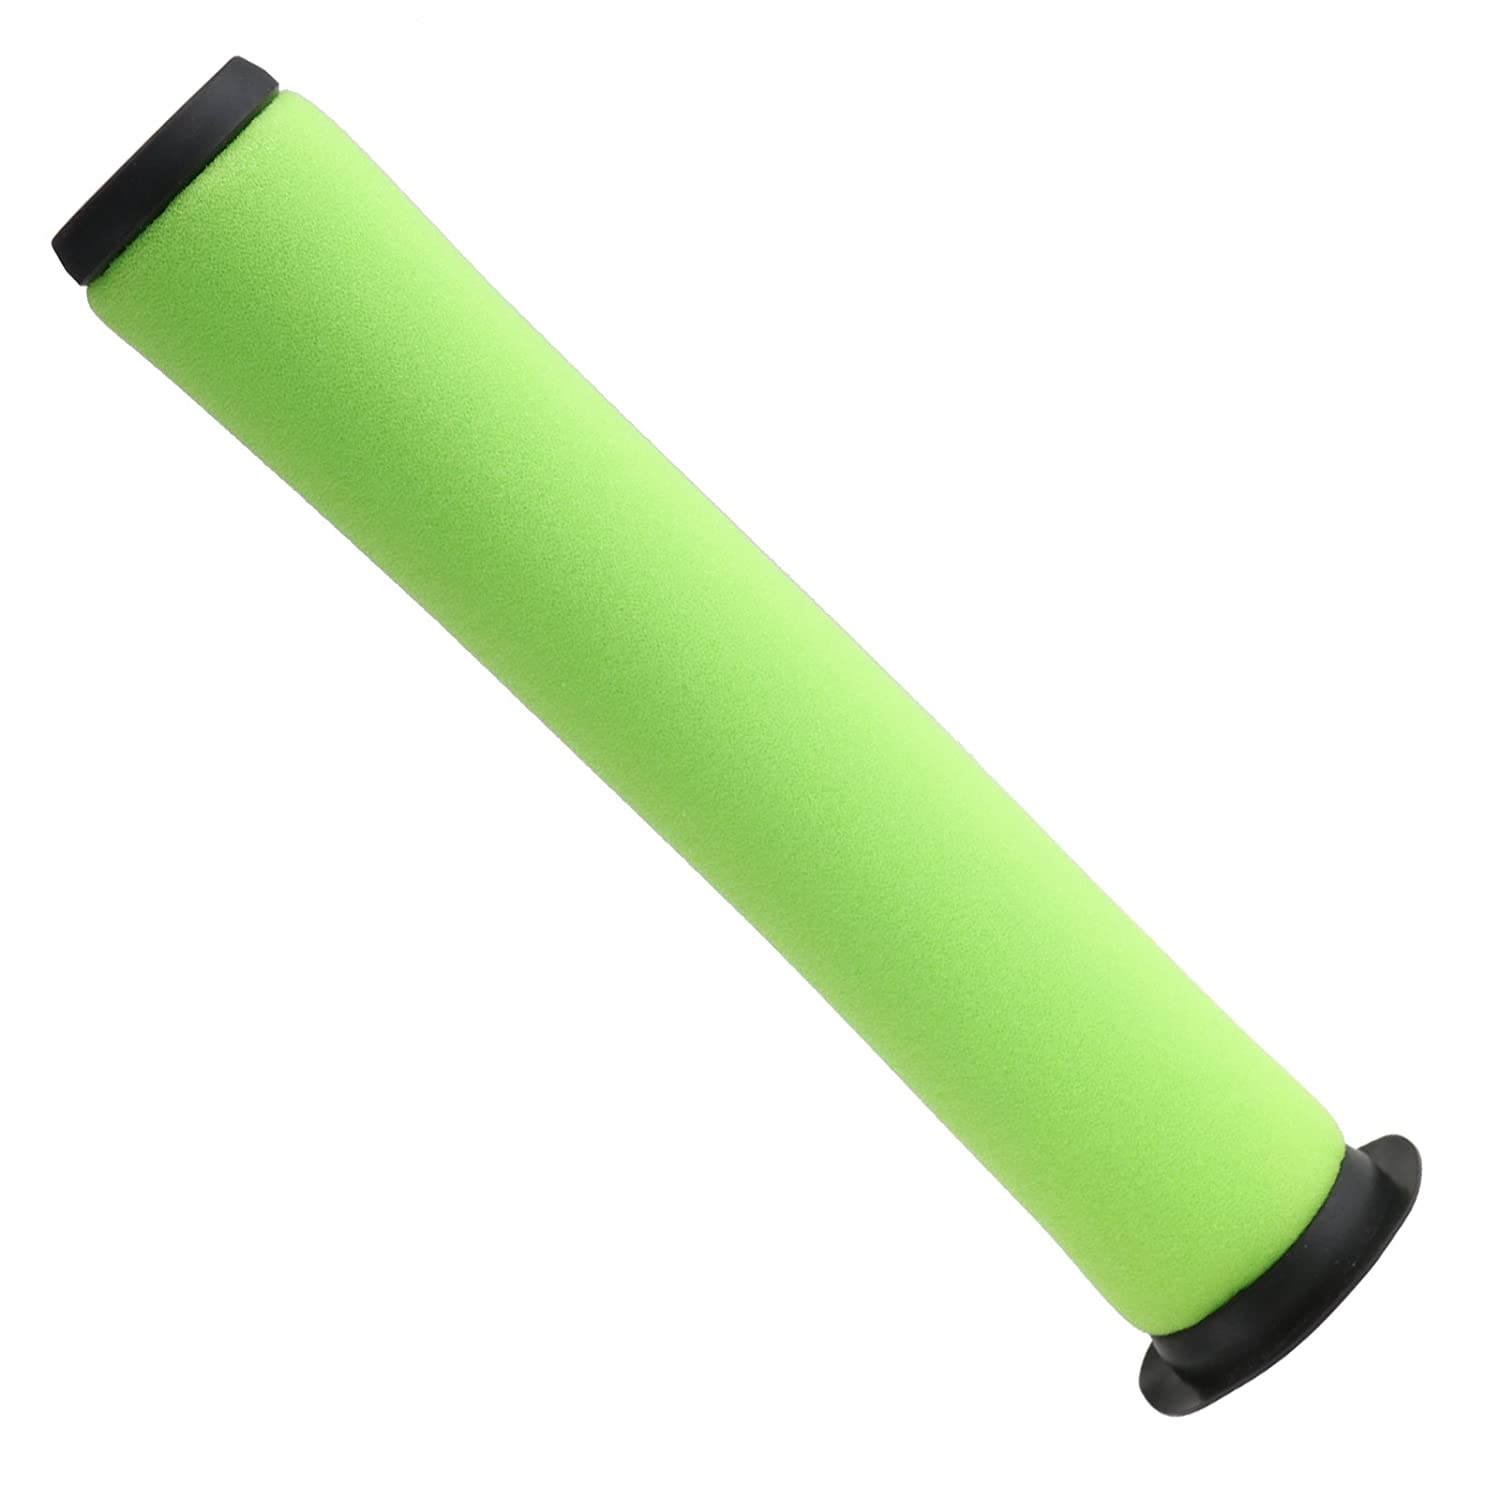 Washable Green Bin Stick Vacuum Cleaner Filter for Dyson Gtech AirRam Mk2 / AirRam Mk2 K9